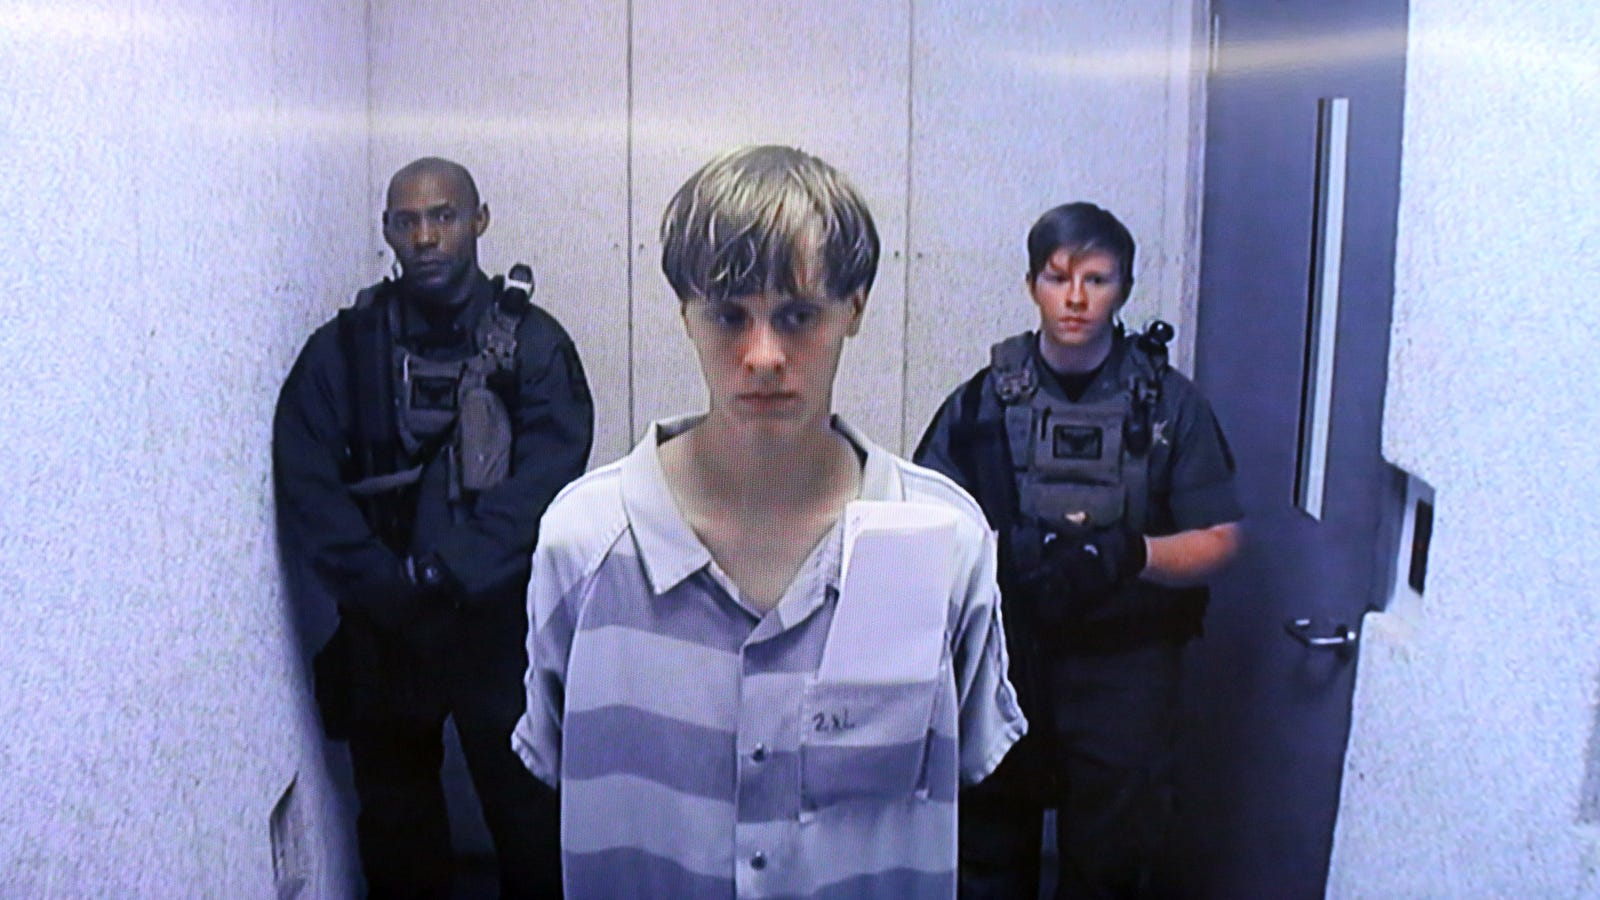 Dylan Roof Wants to Fire His Jewish, Indian Lawyers, 'My Political and Biological Enemies'